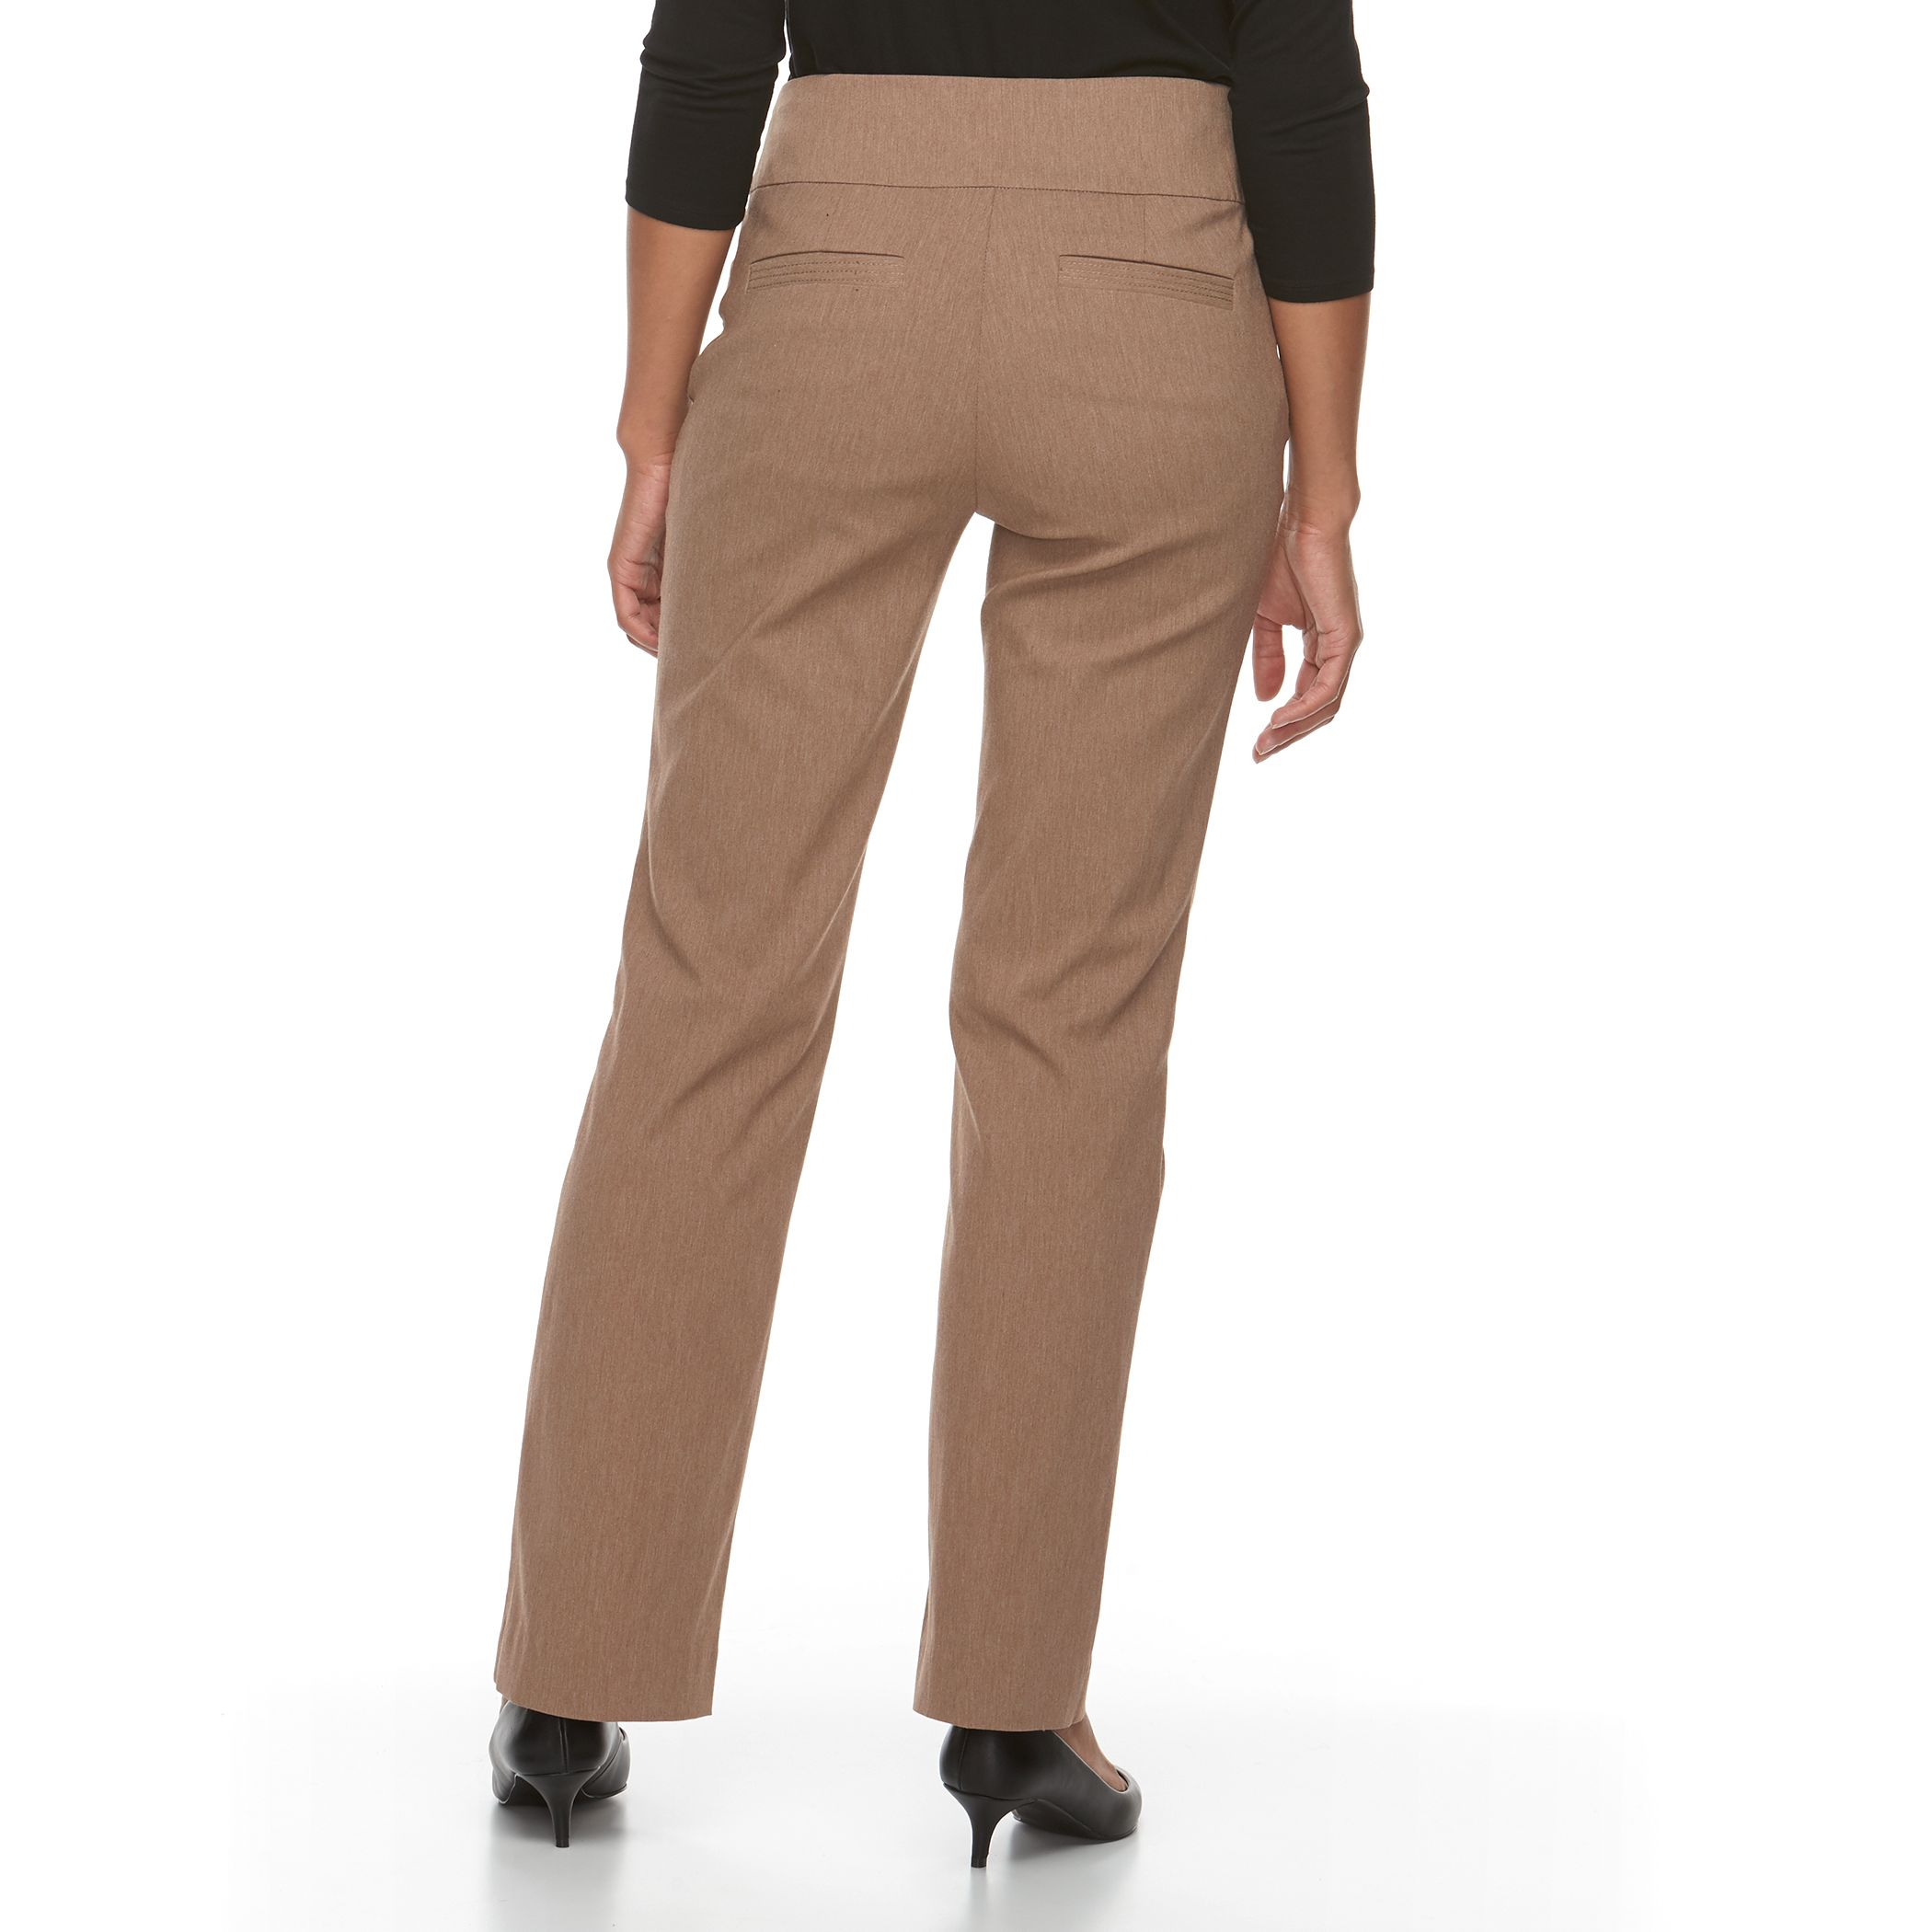 b5edb64be7341 Dana Buchman Pants